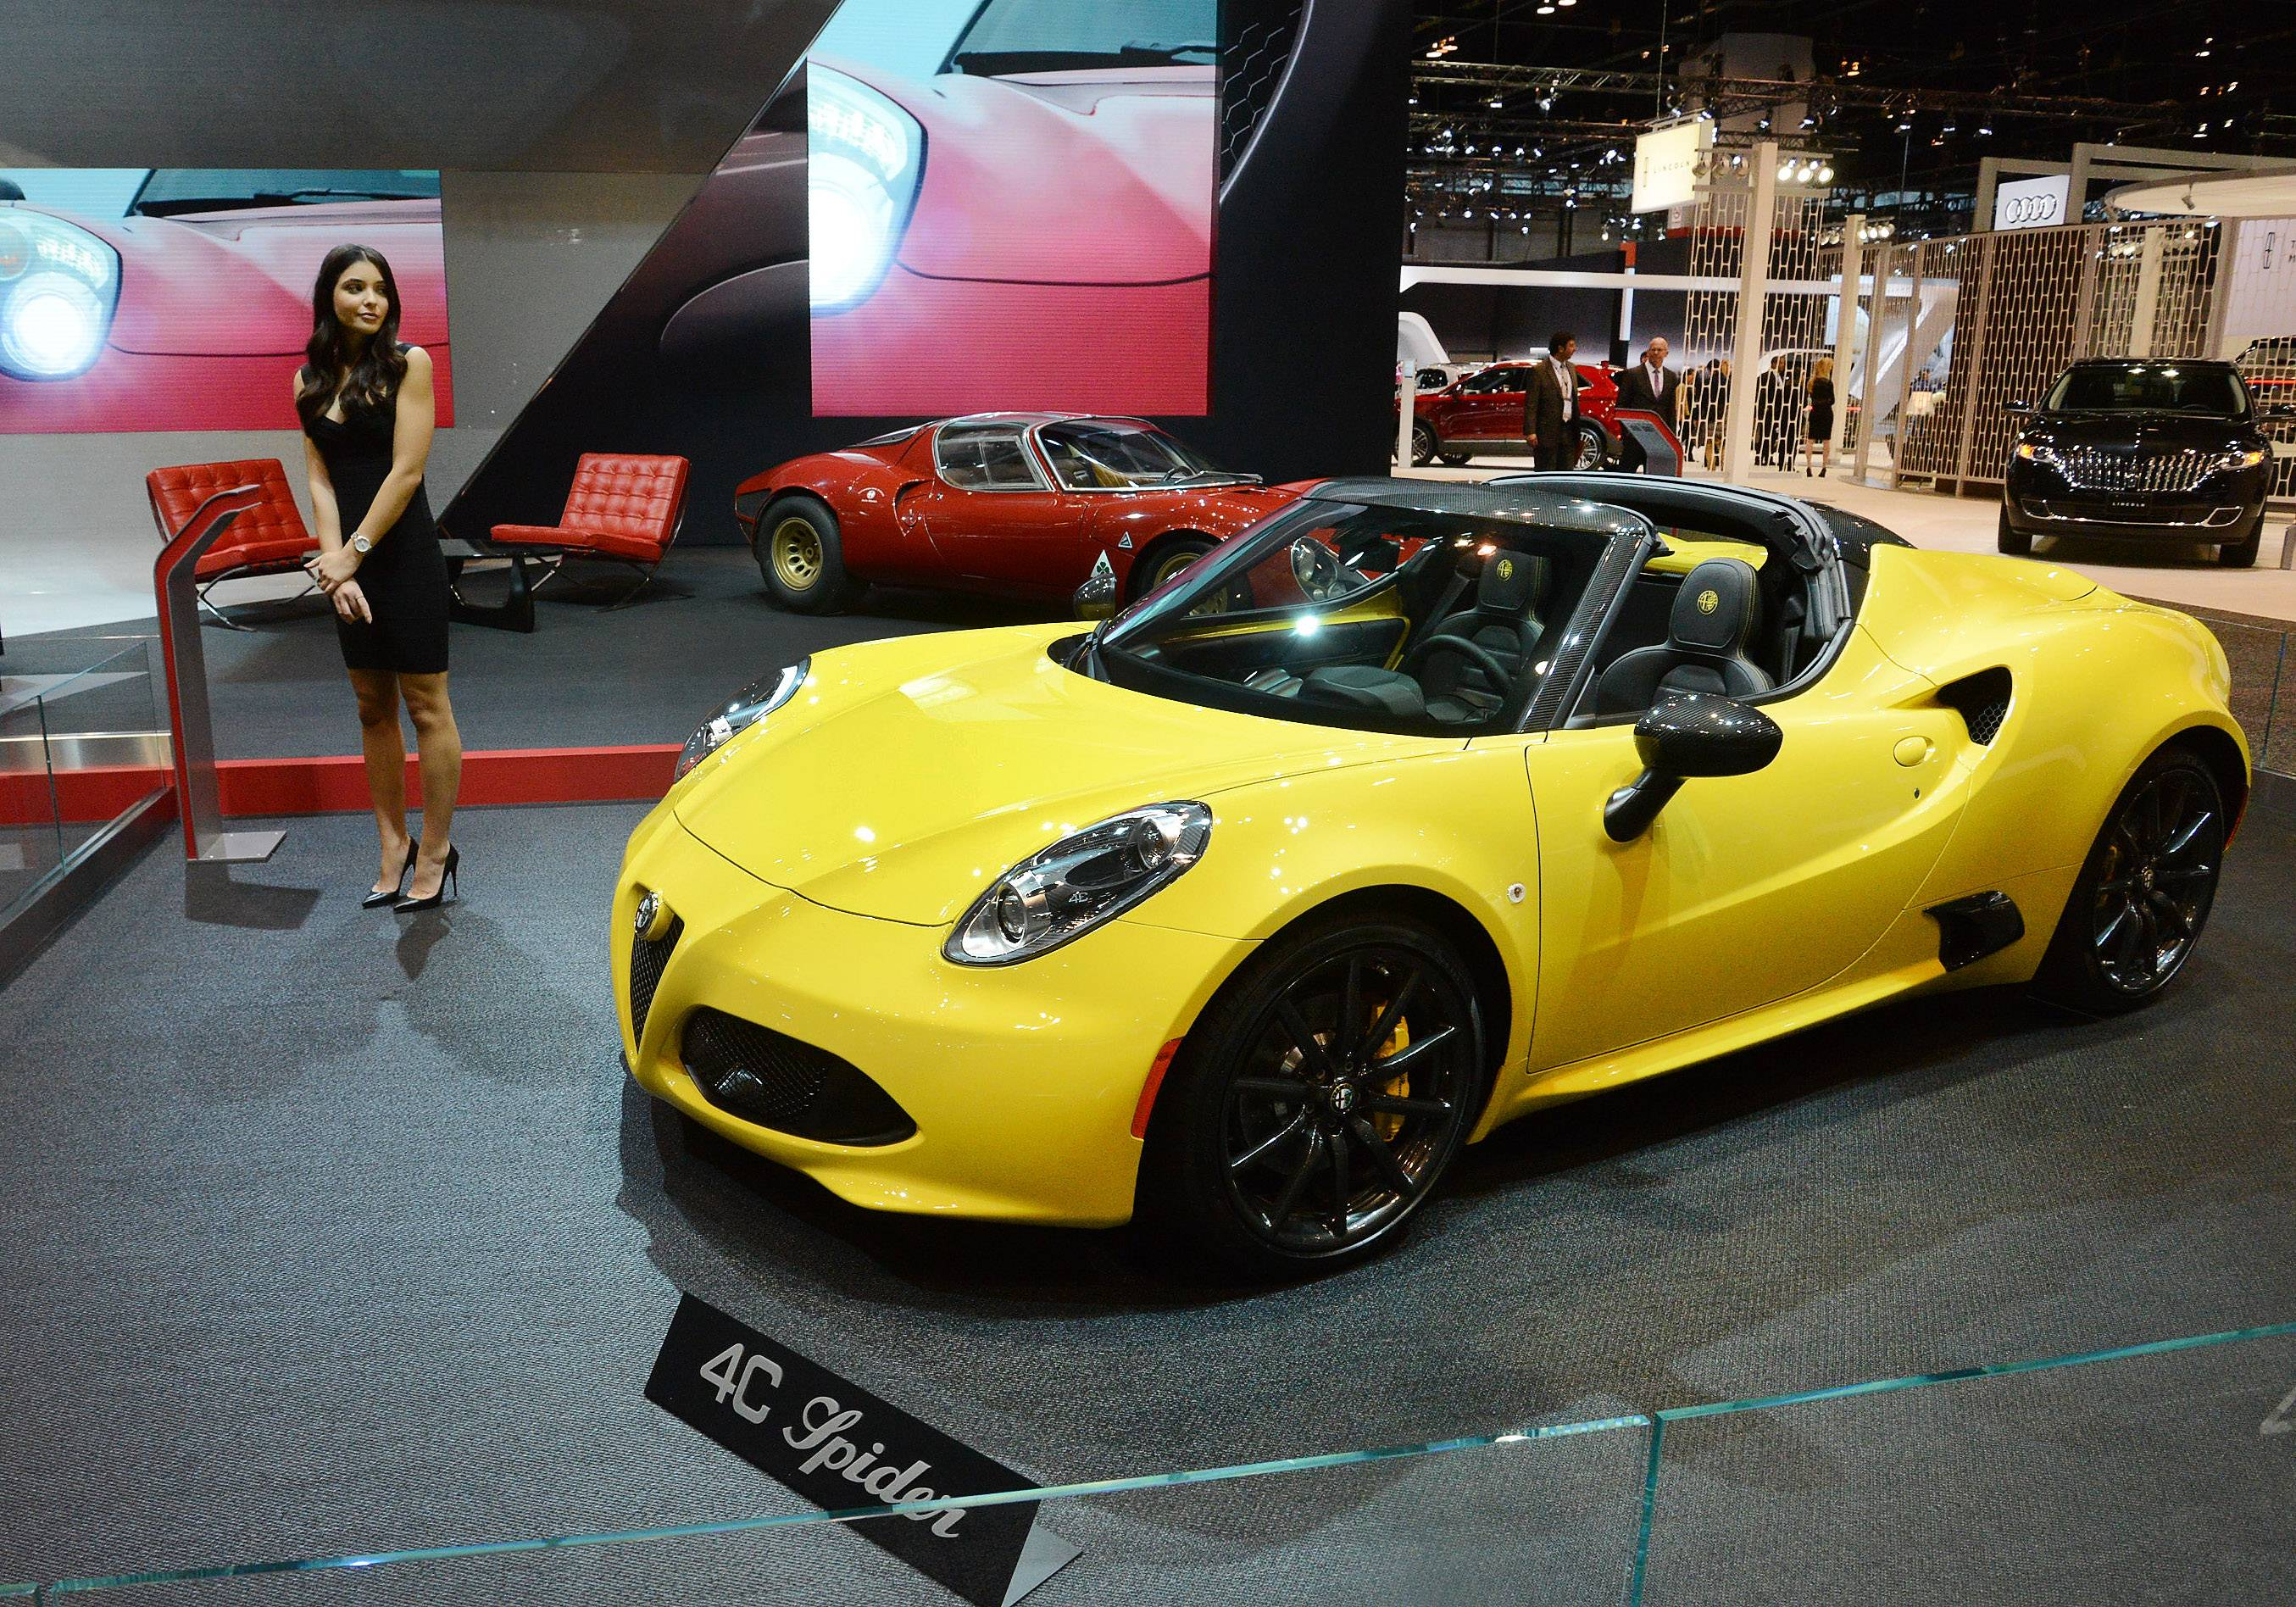 The Alfa Romeo Spider is among the muscle cars at the Chicago Auto Show.